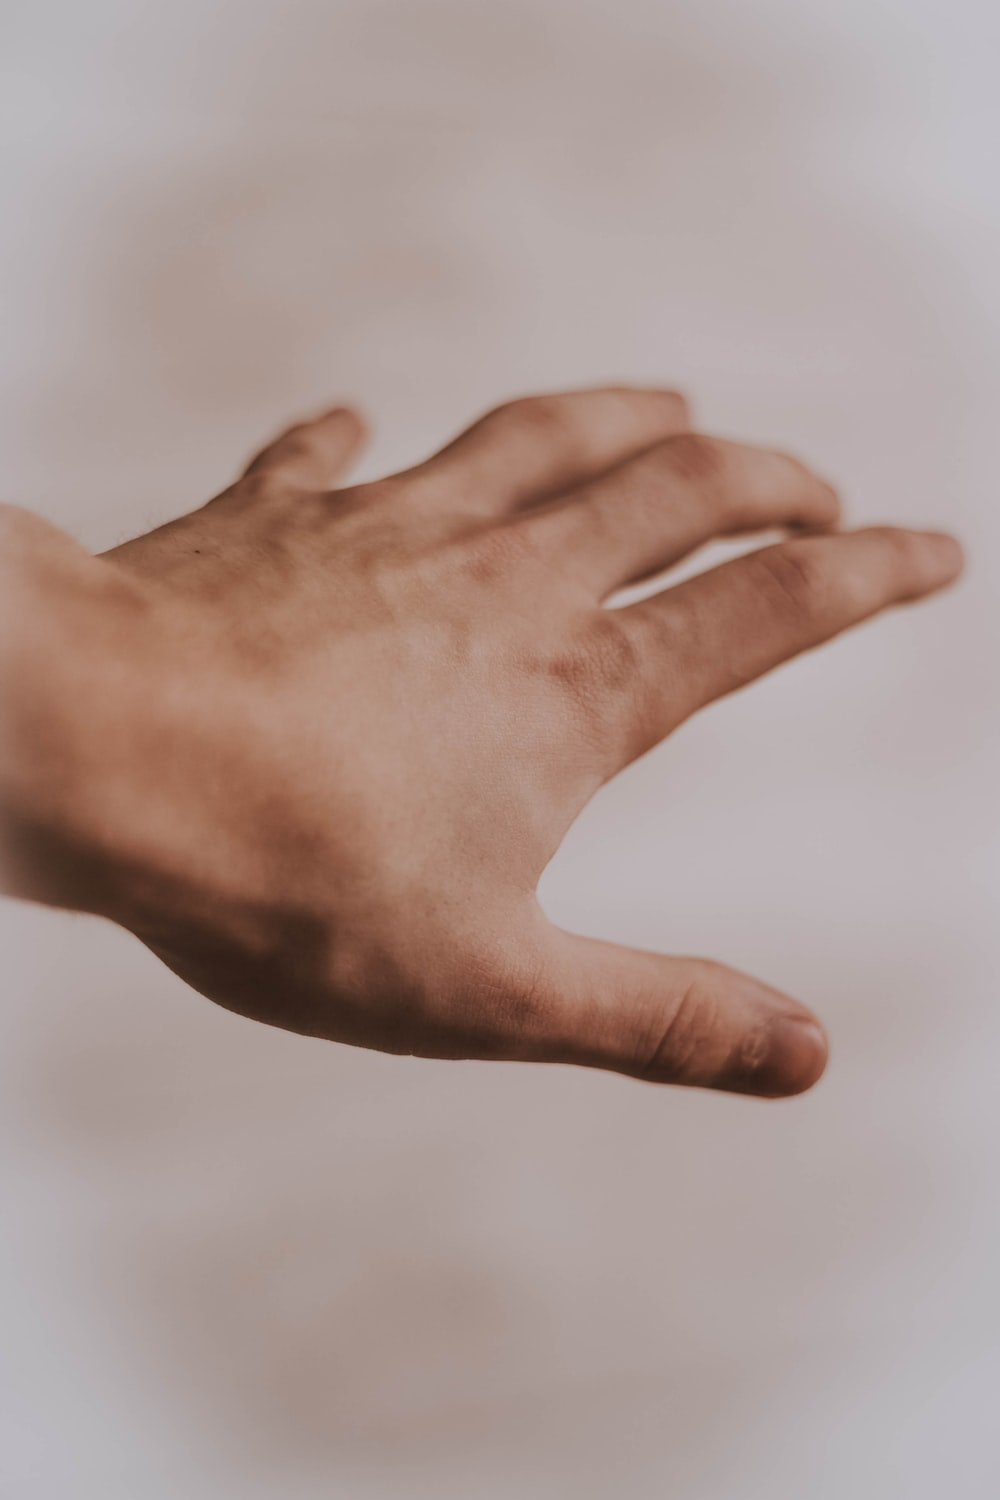 person's left hand